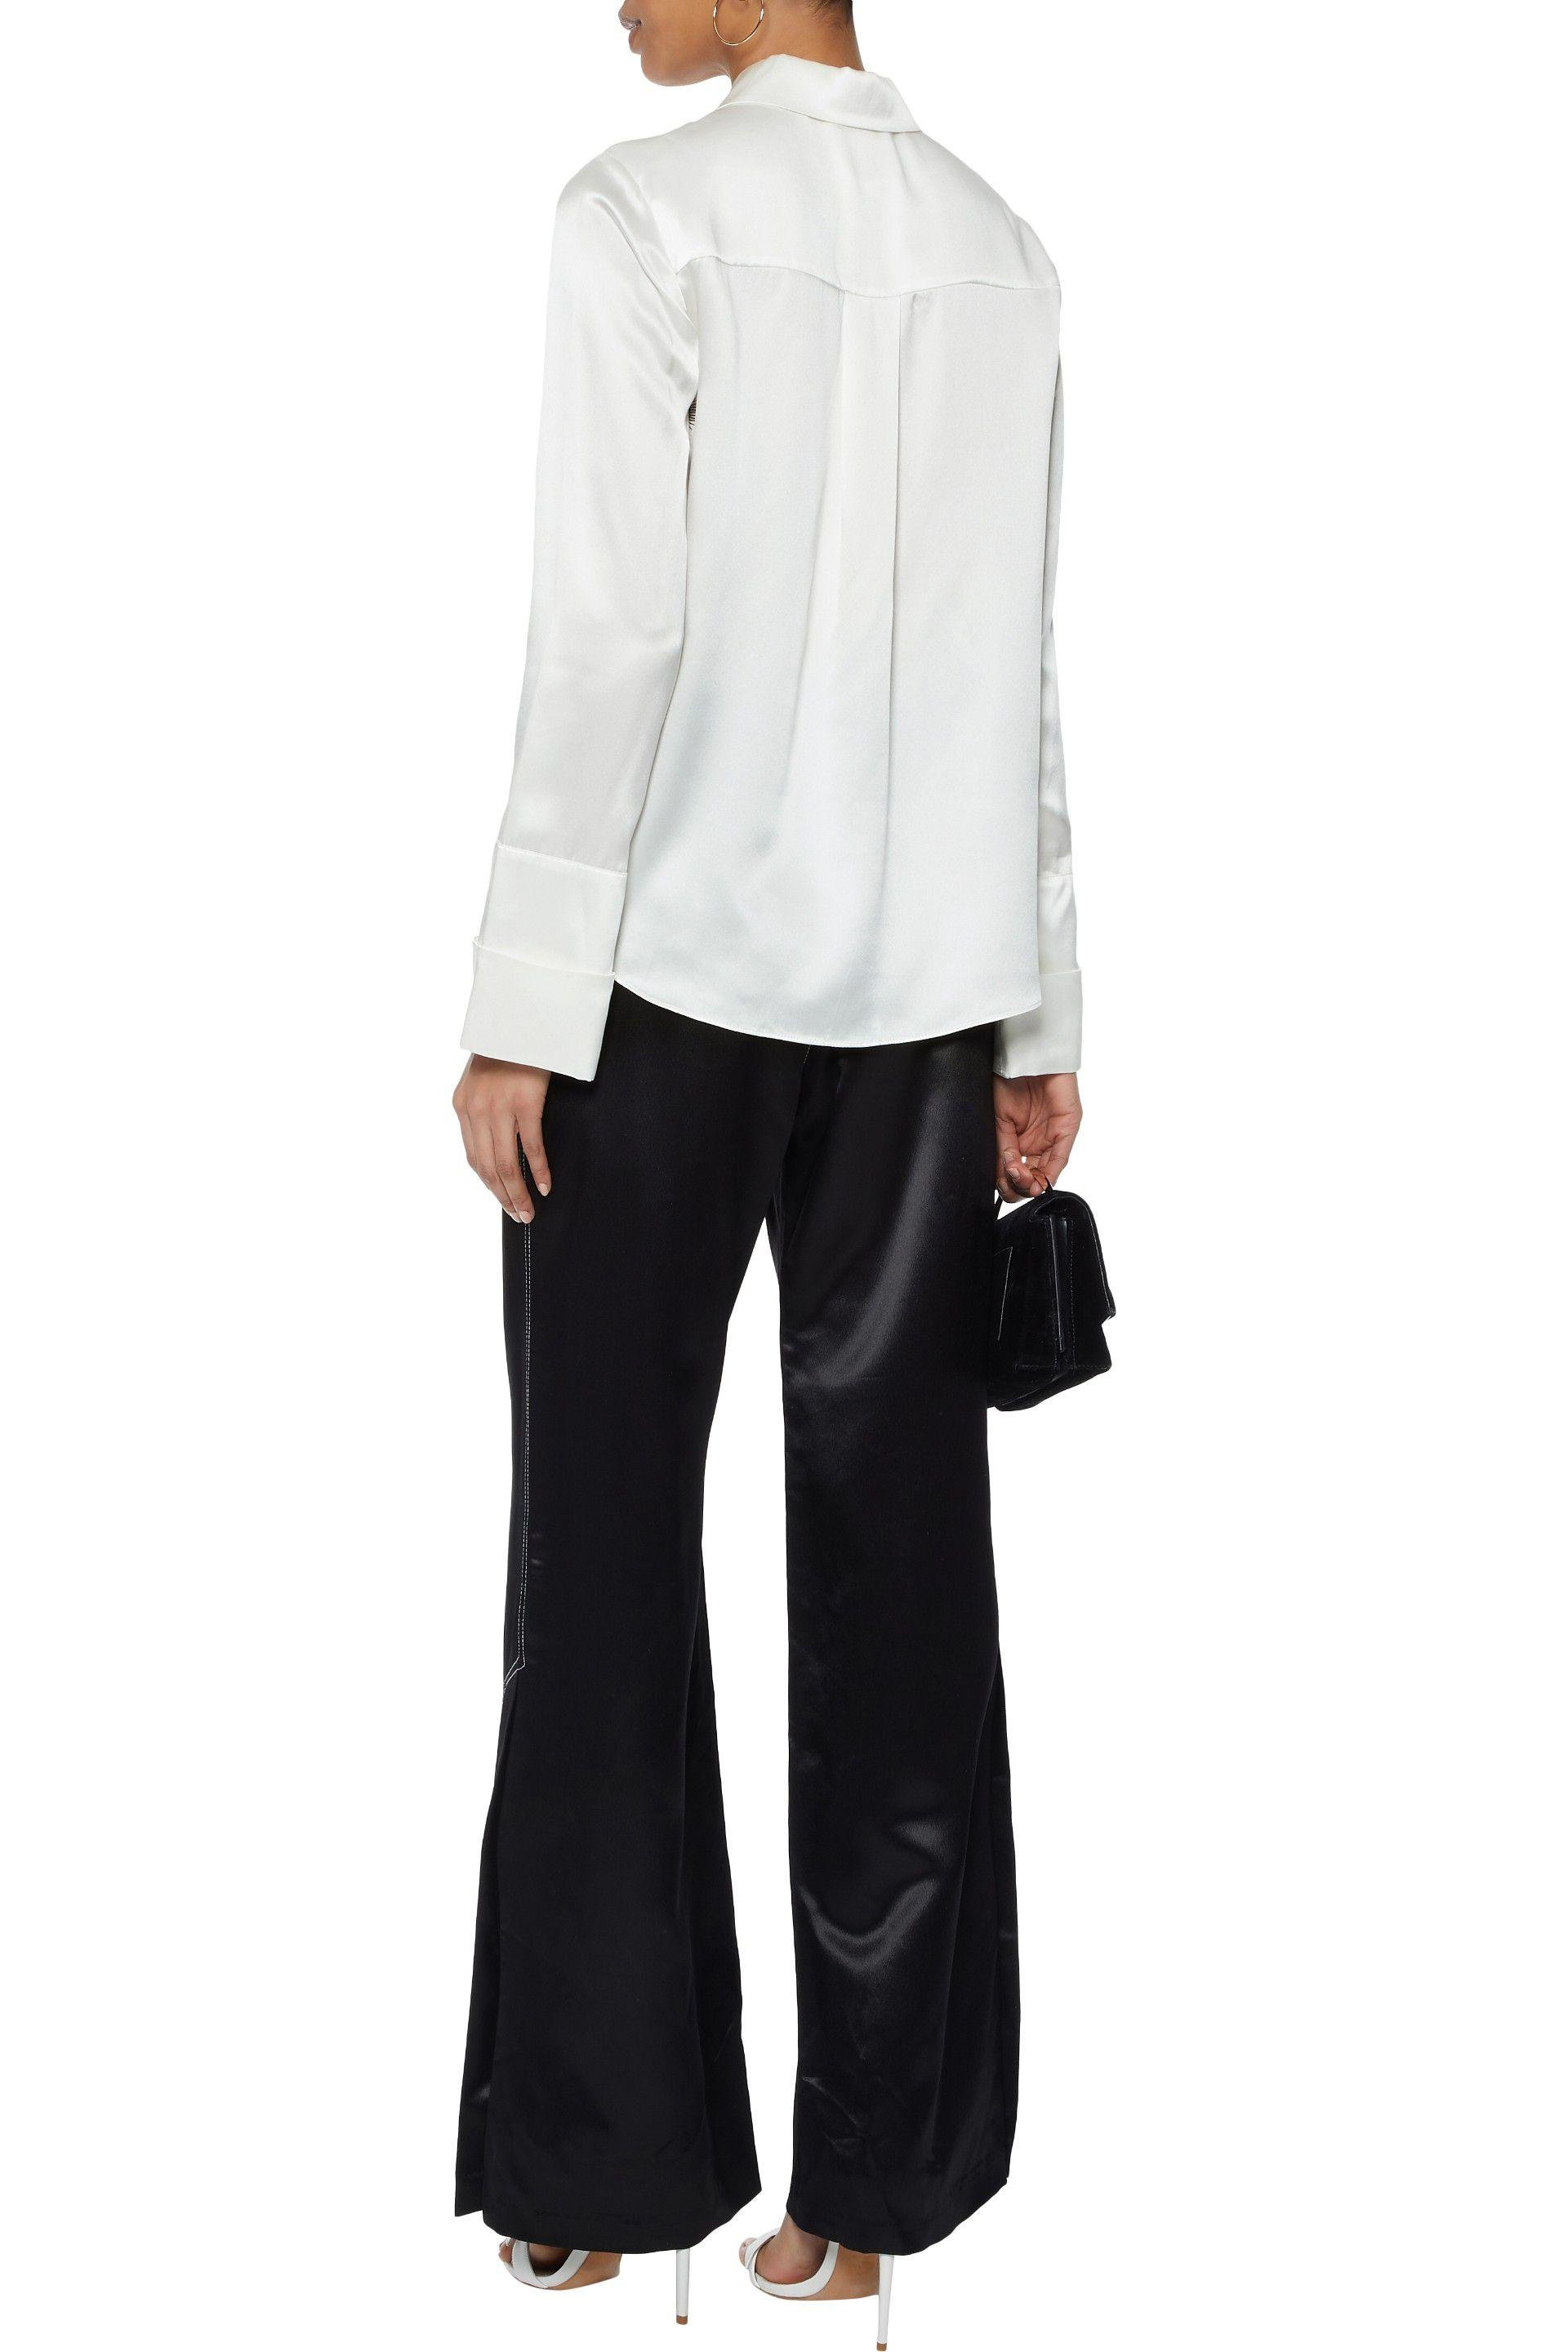 Cinq À Sept Woman Korlan Lace-trimmed Silk-satin Shirt Ivory Size L Cinq à Sept With Mastercard Cheap Online Shop Offer Clearance Outlet High Quality Free Shipping Cost Y4cKY